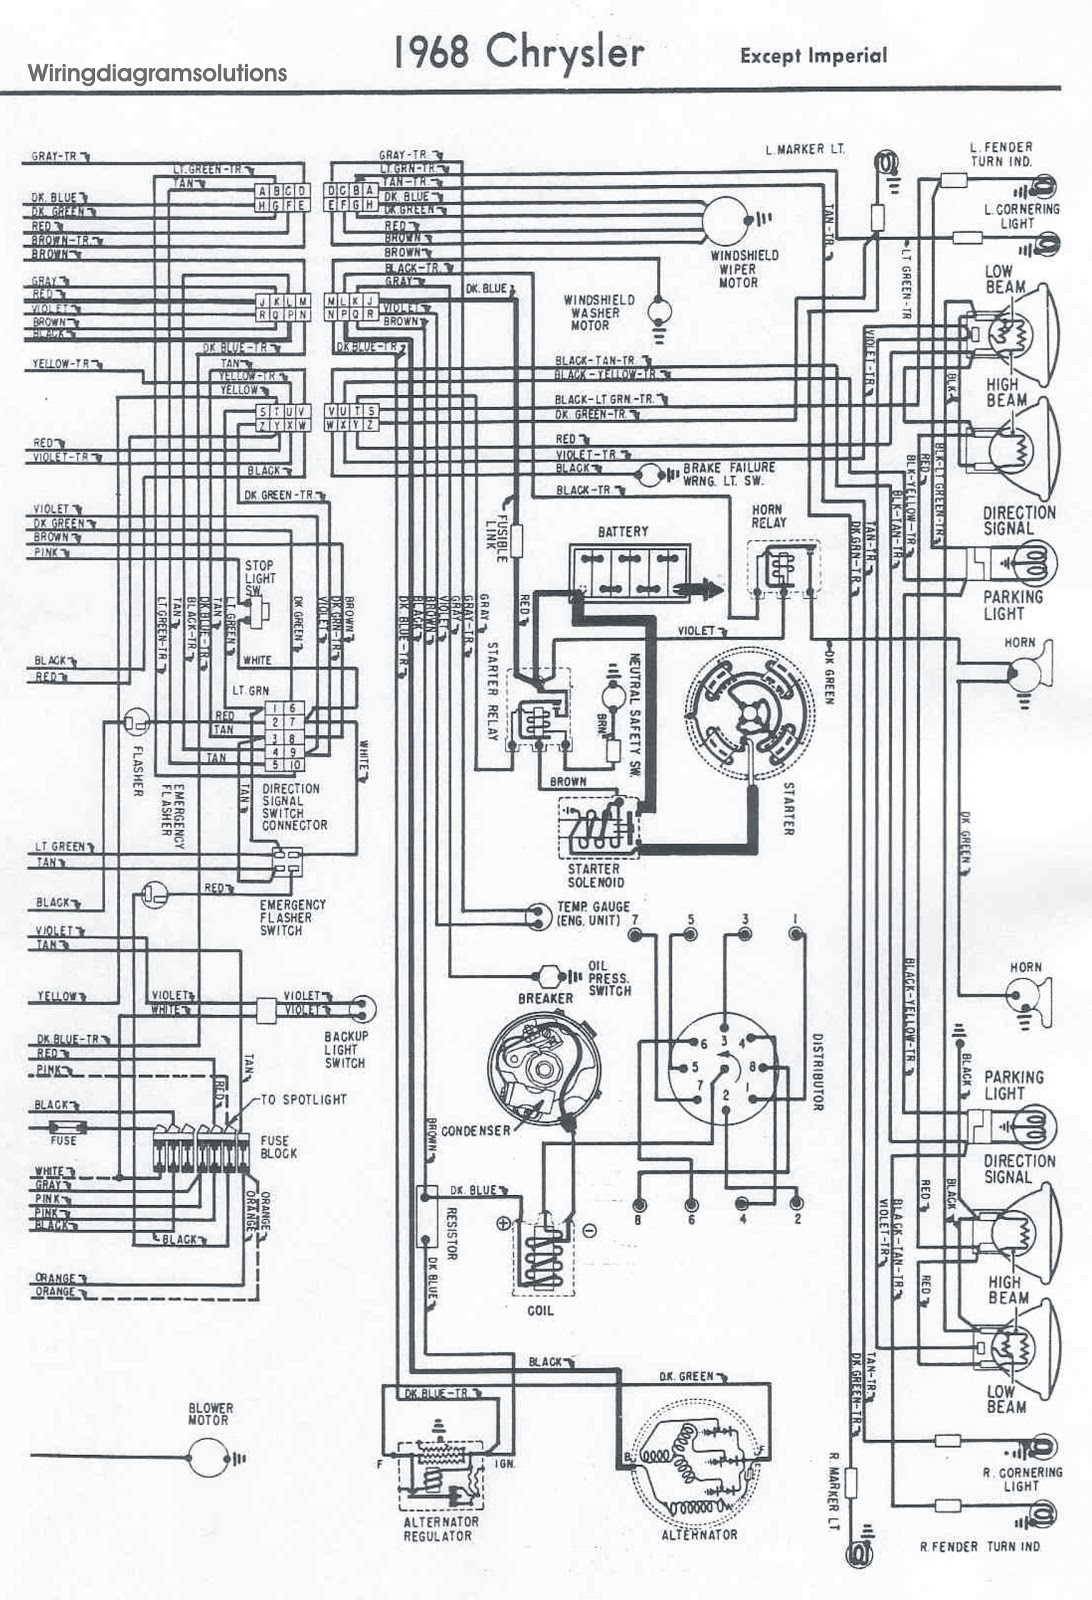 2007 dodge charger schematics 2007 chevy silverado